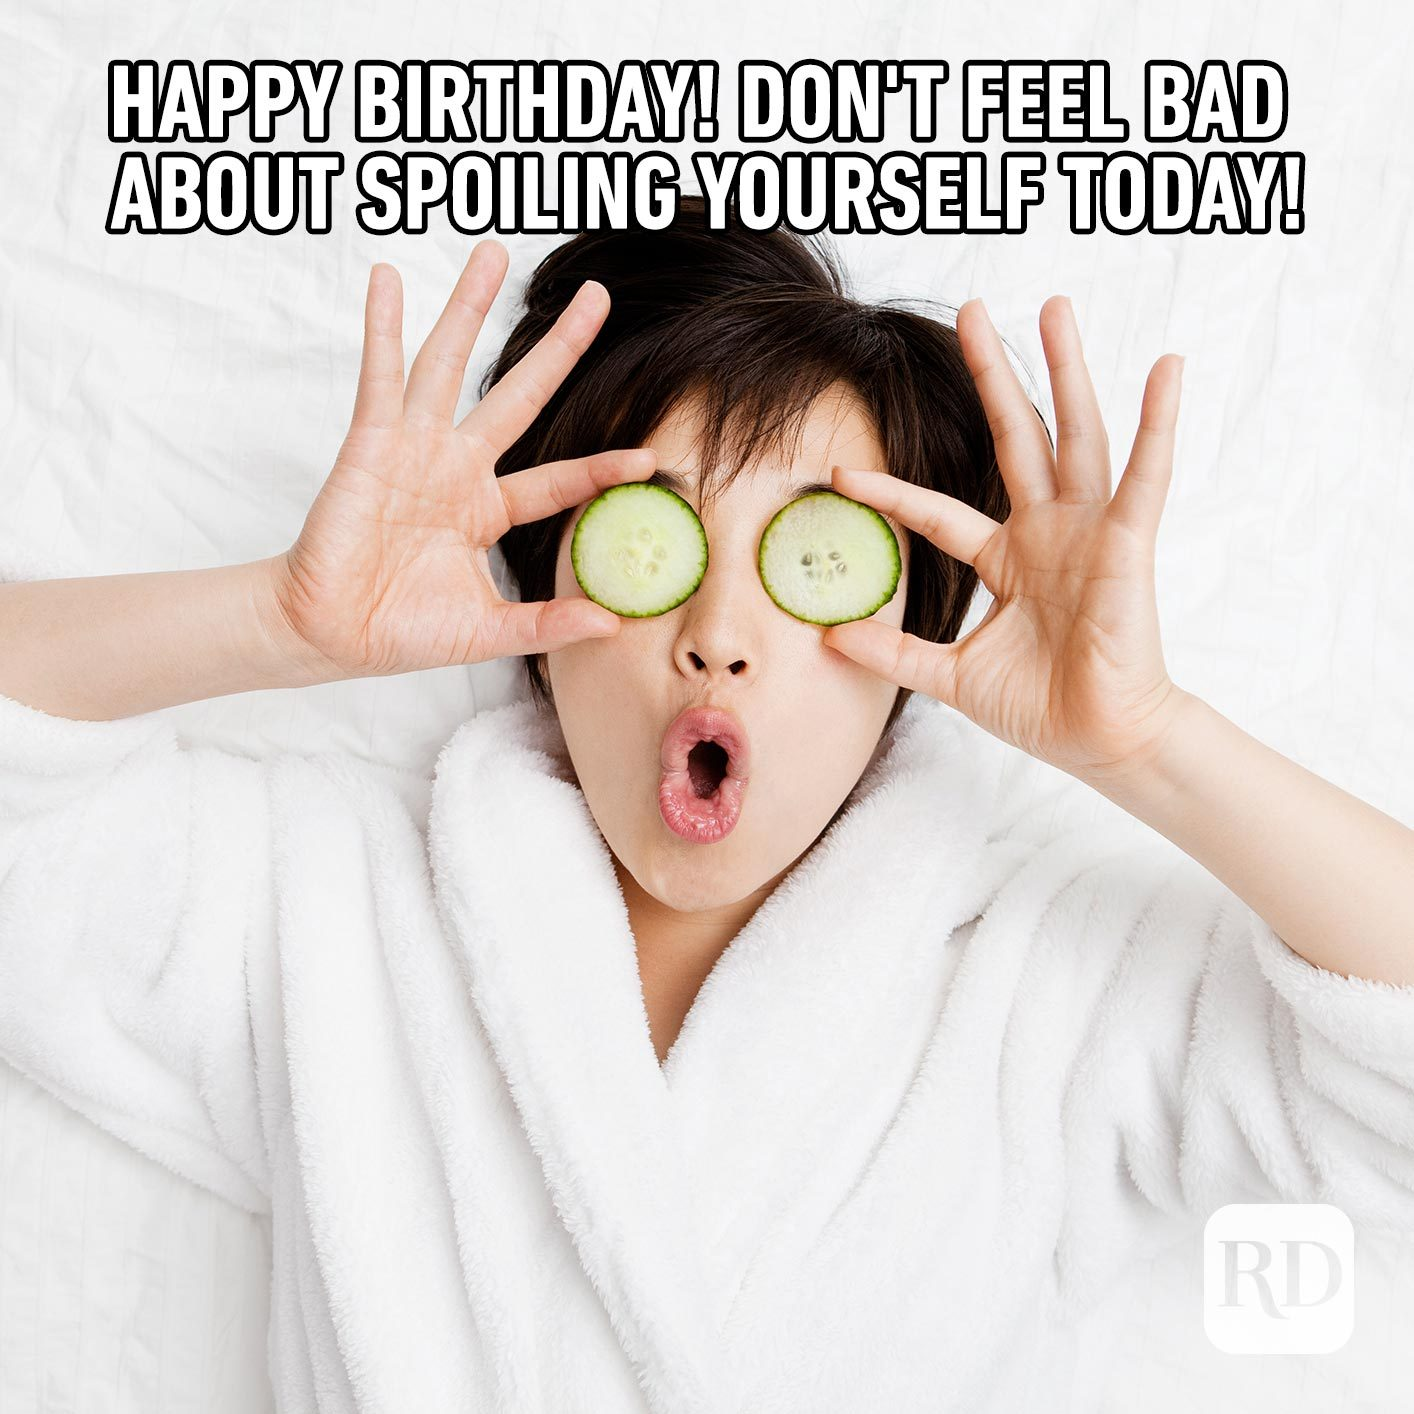 Happy Birthday! Don't feel bad about spoiling yourself today!